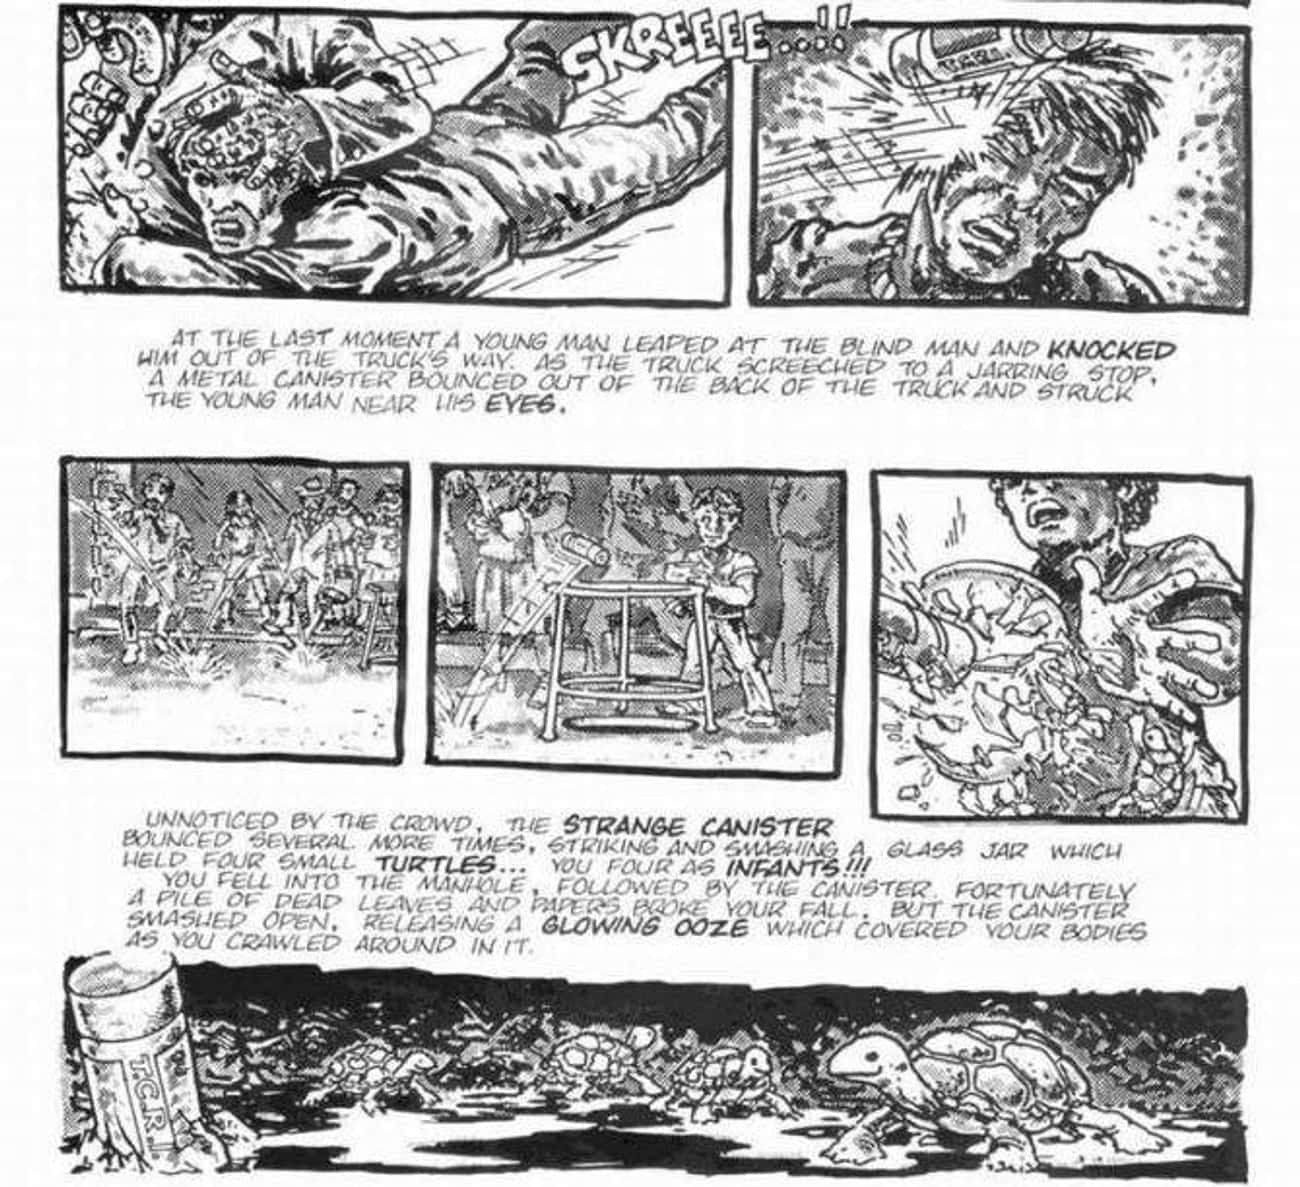 The Radioactive Goop That Blinded Daredevil Also Created The Ninja Turtles